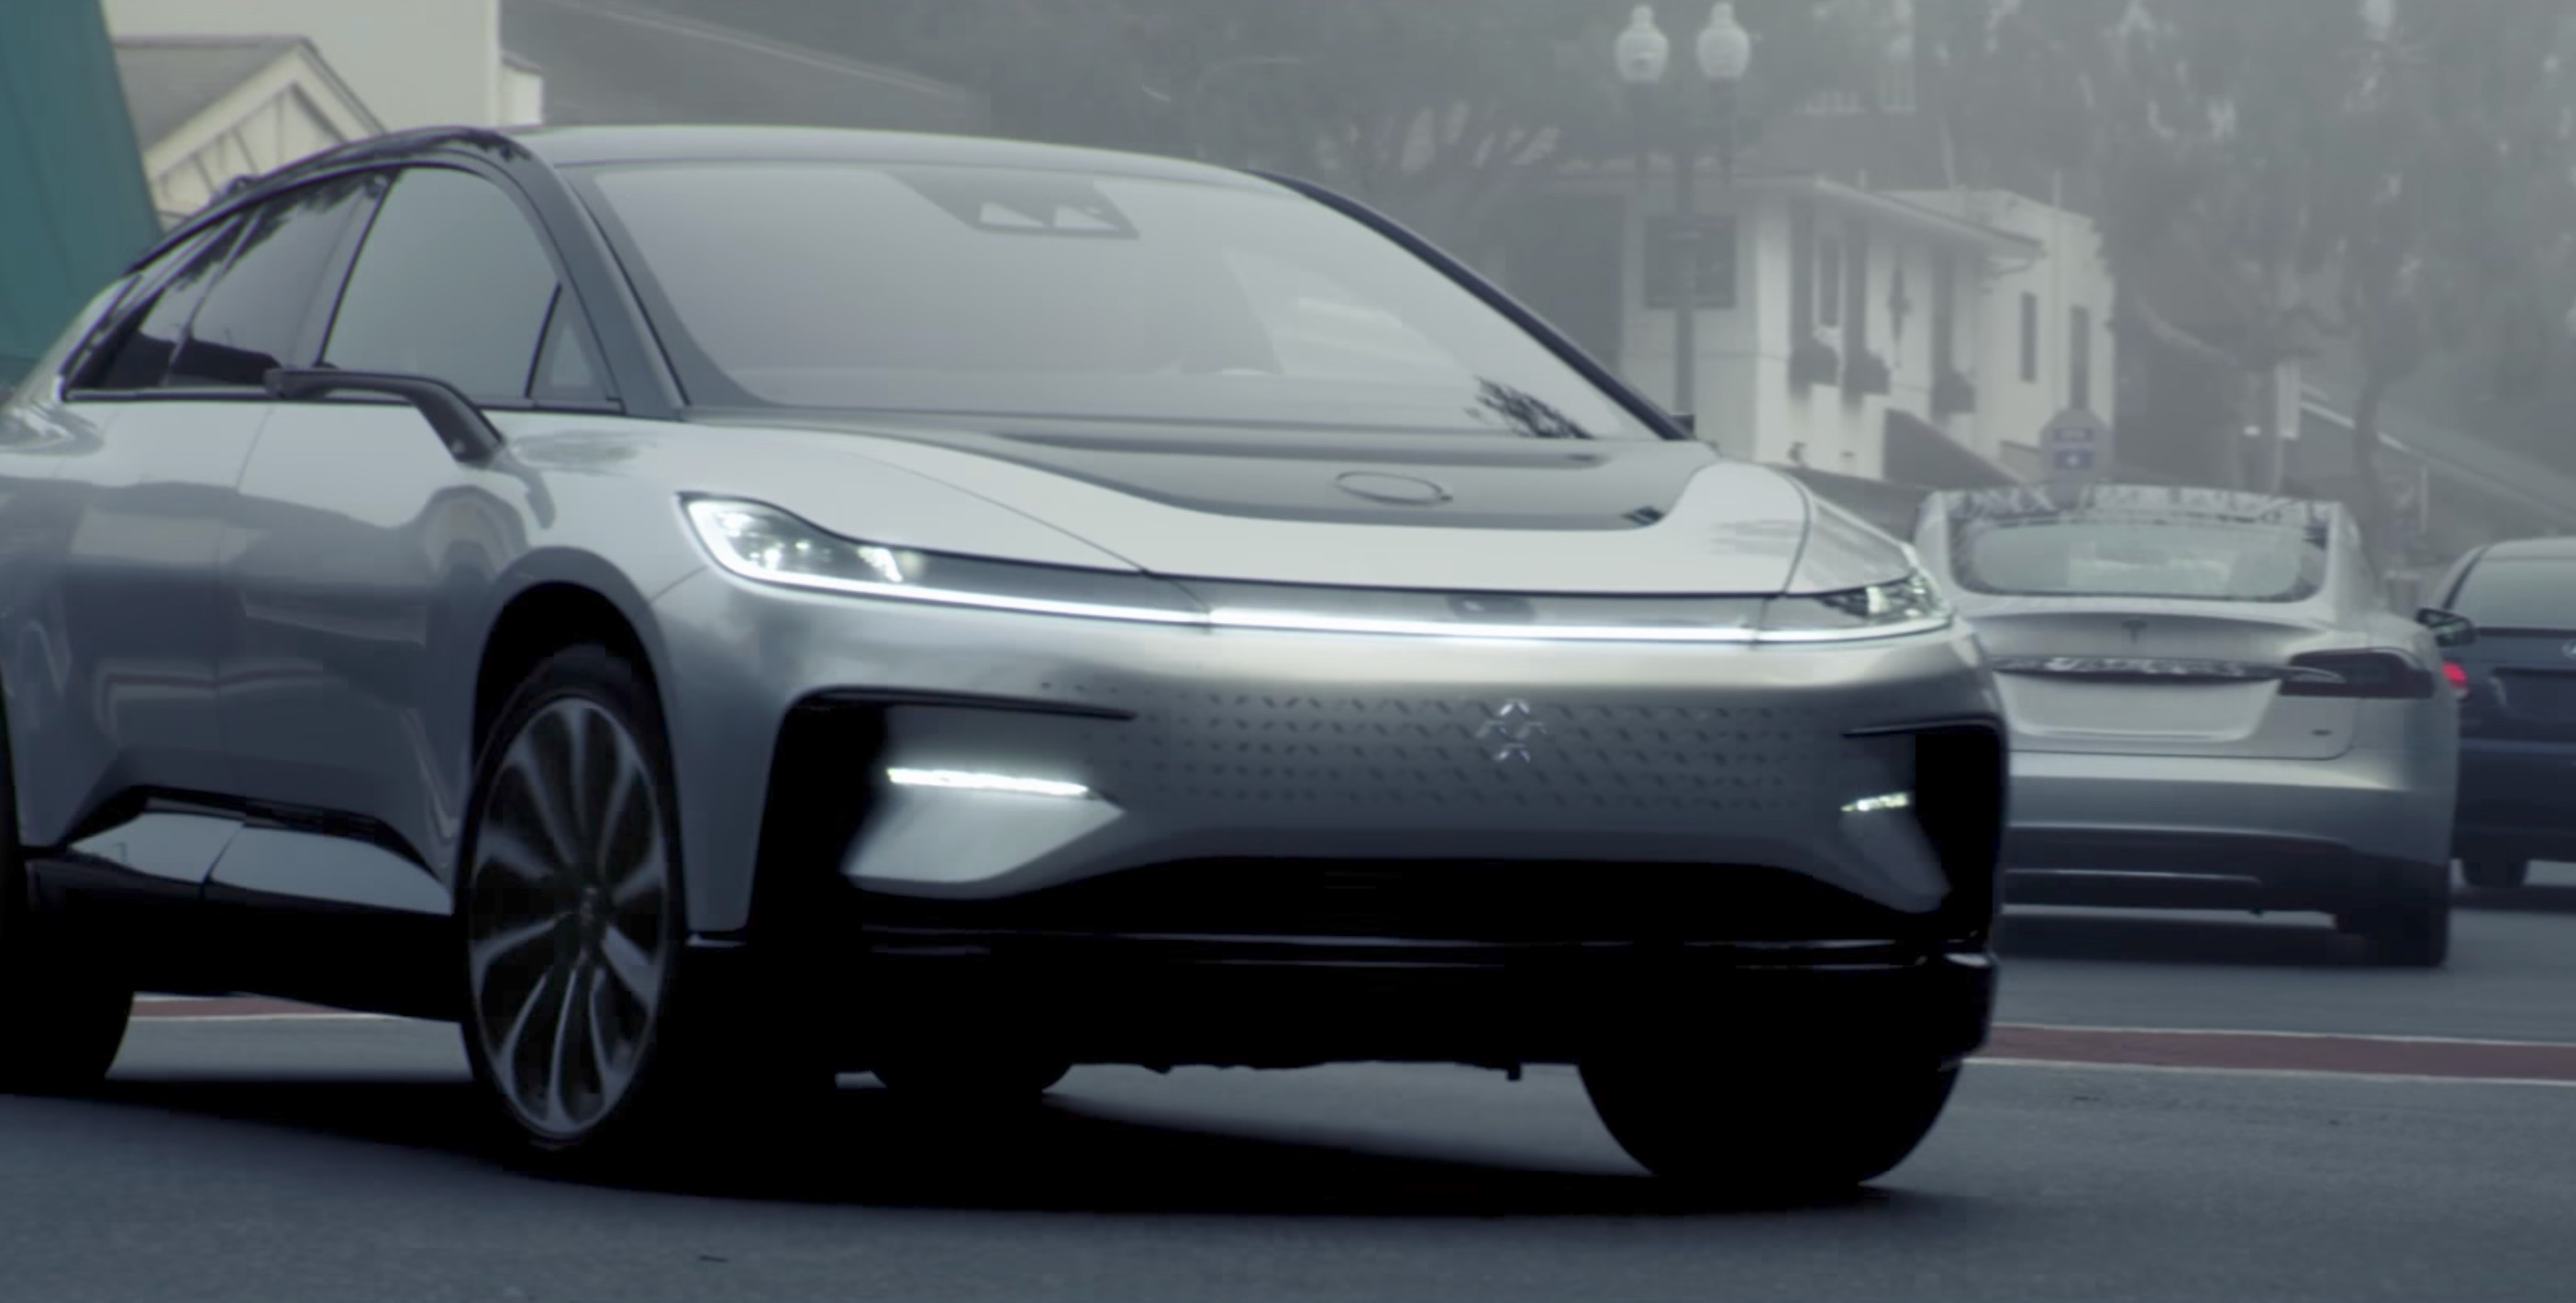 Faraday Future Celebrates 3 Year Anniversary With Another